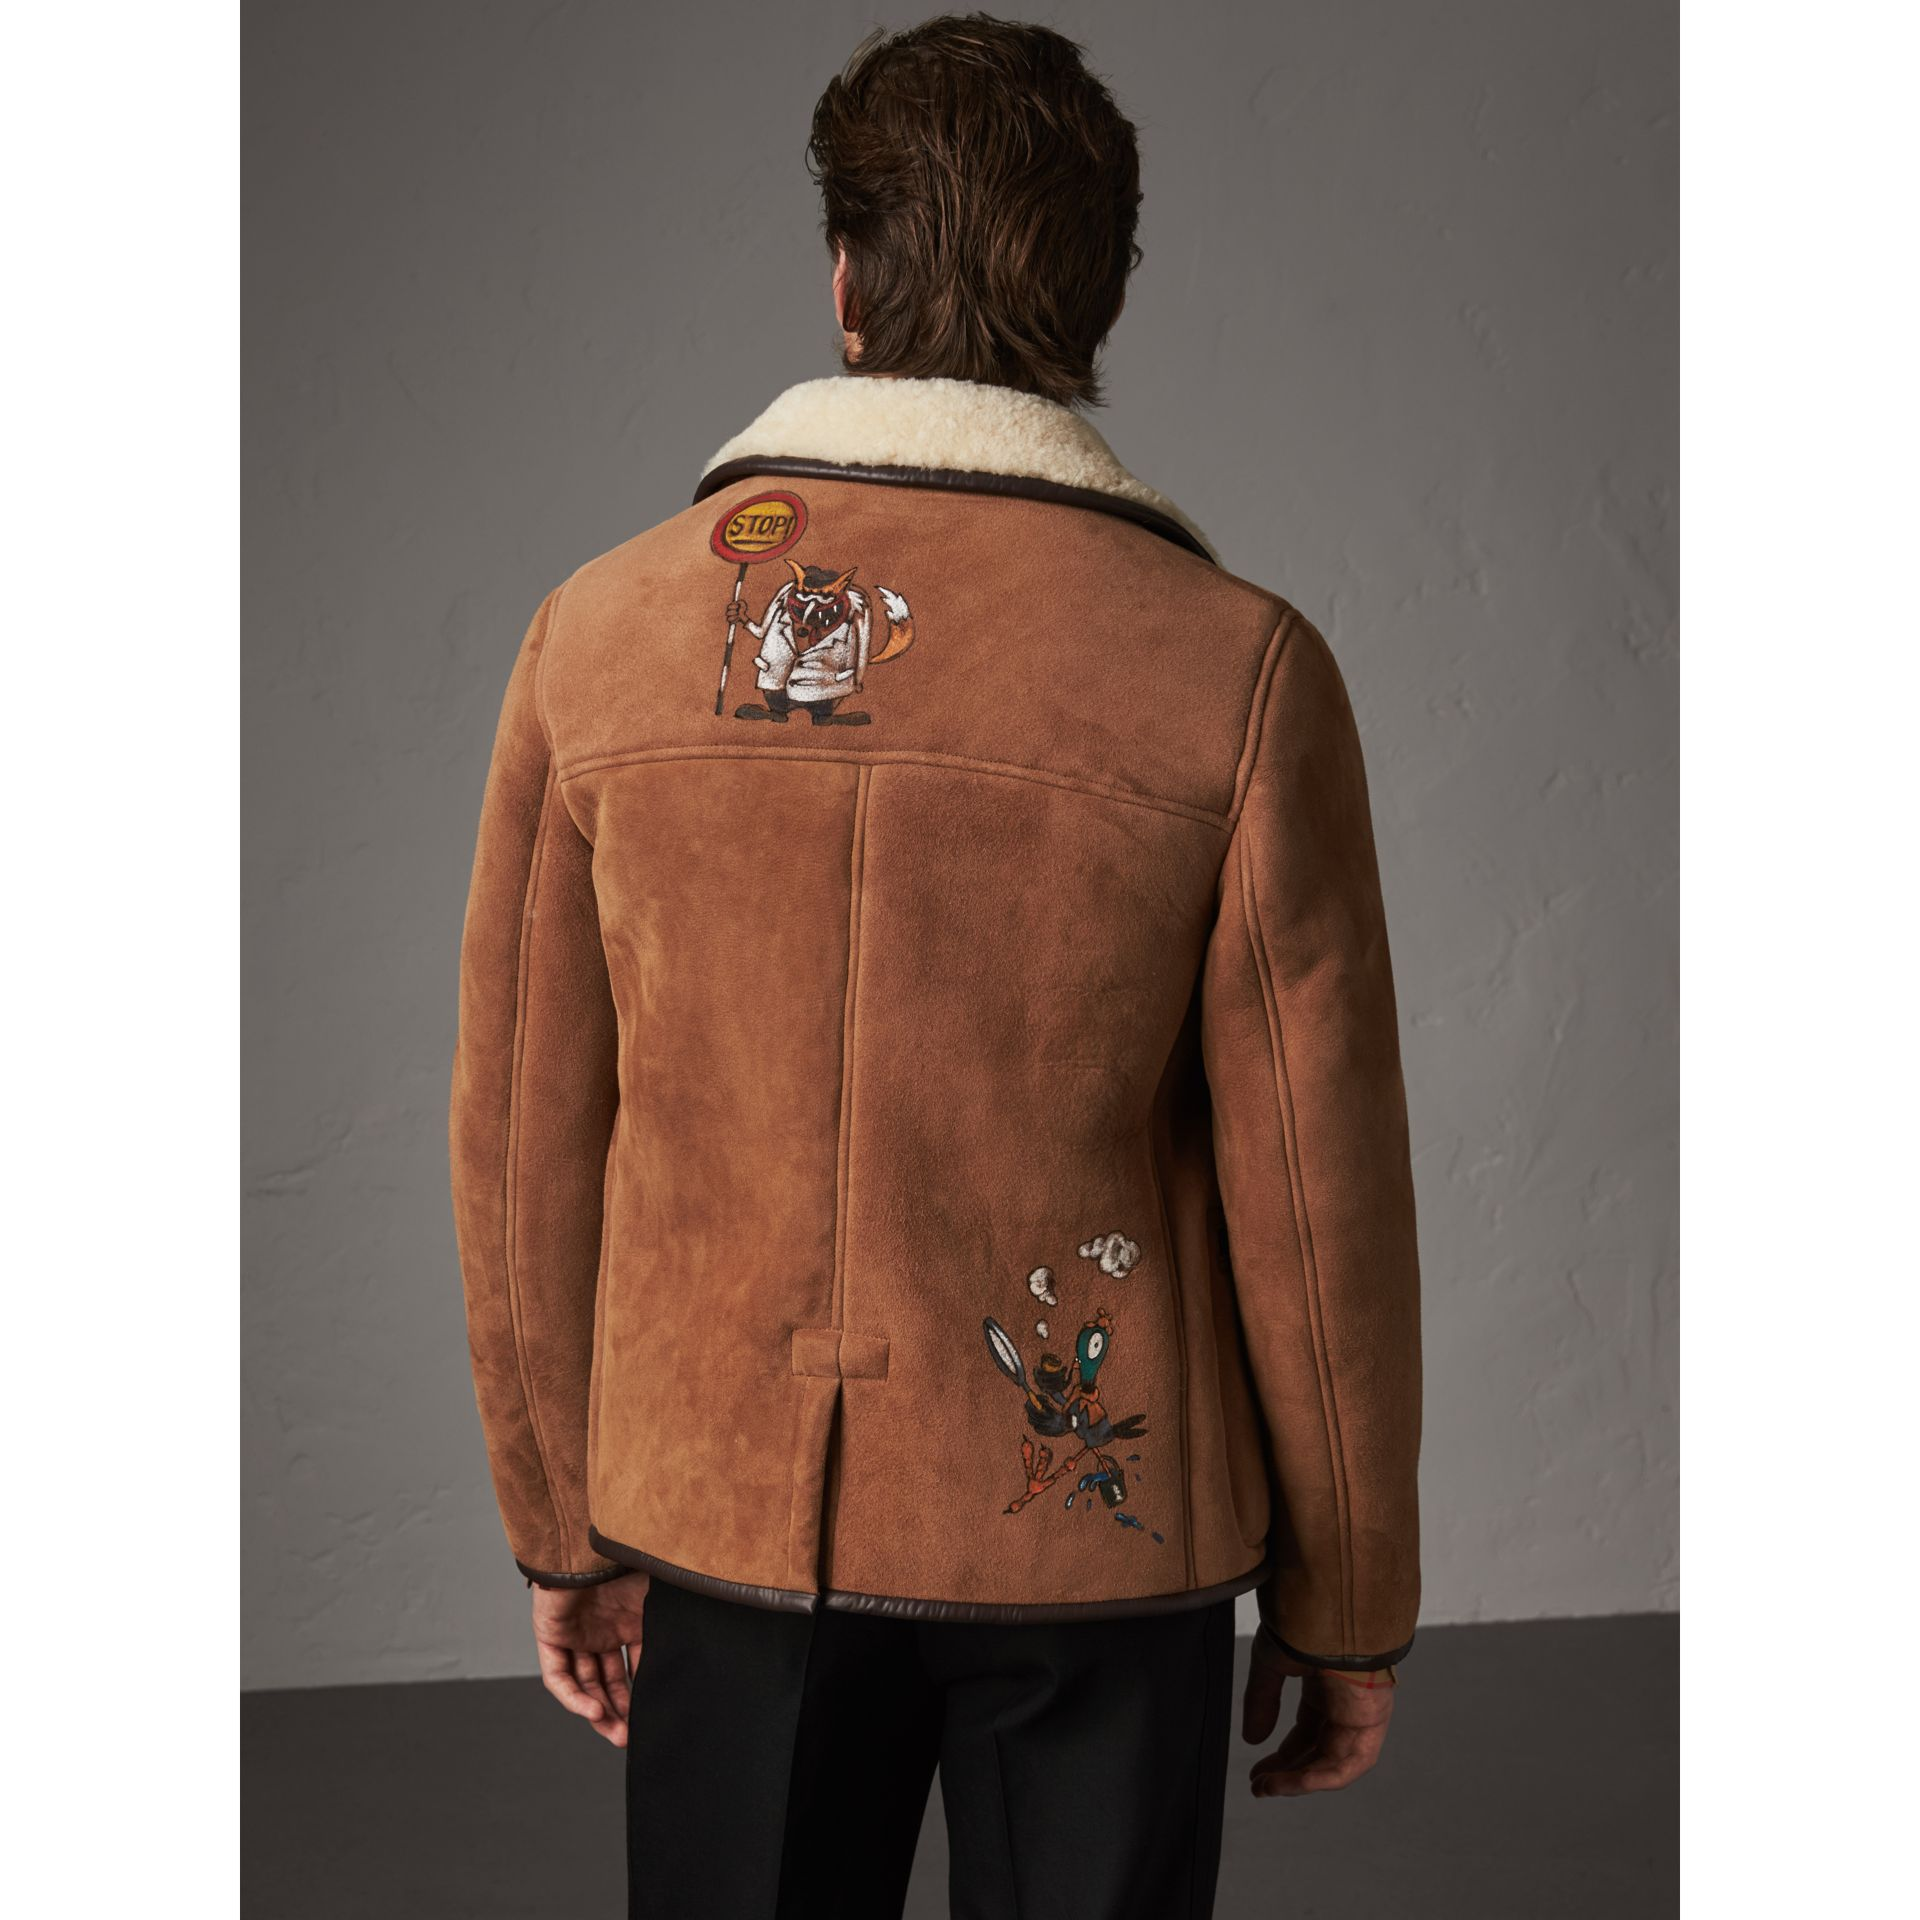 Sketch Print Shearling Jacket in Biscuit - Men | Burberry Canada - gallery image 2